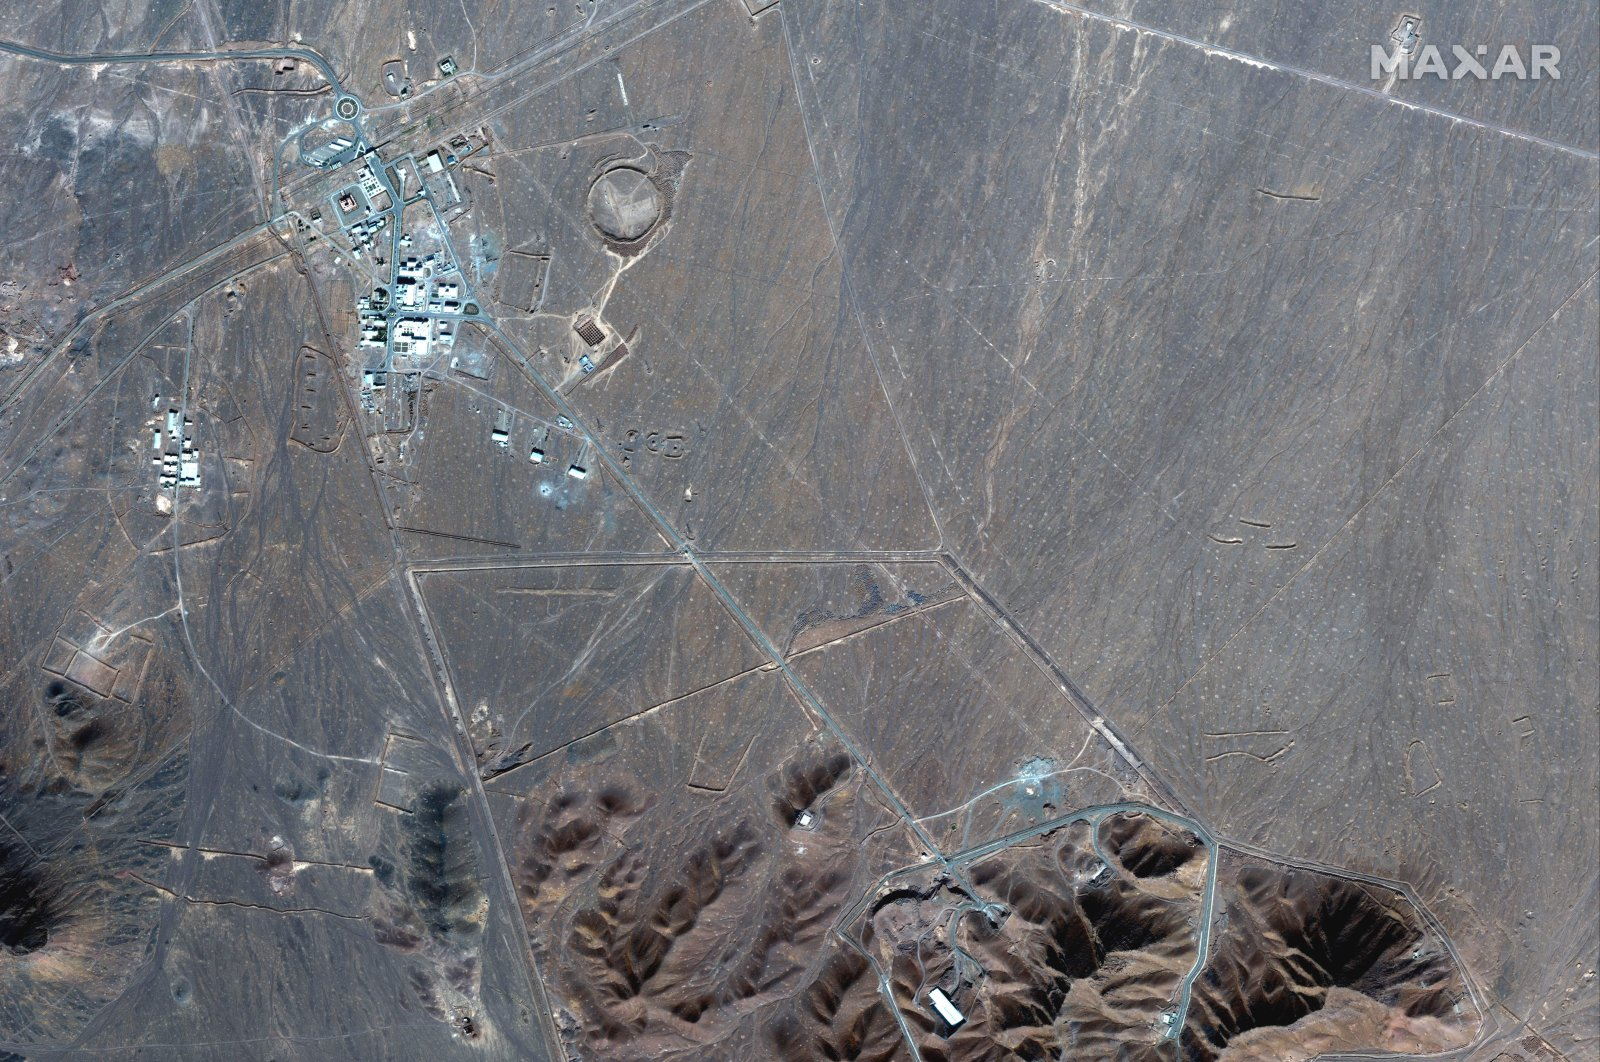 This satellite photo by Maxar Technologies shows the Fordo nuclear site in Iran, Nov. 4, 2020. (Maxar Technologies via AP)